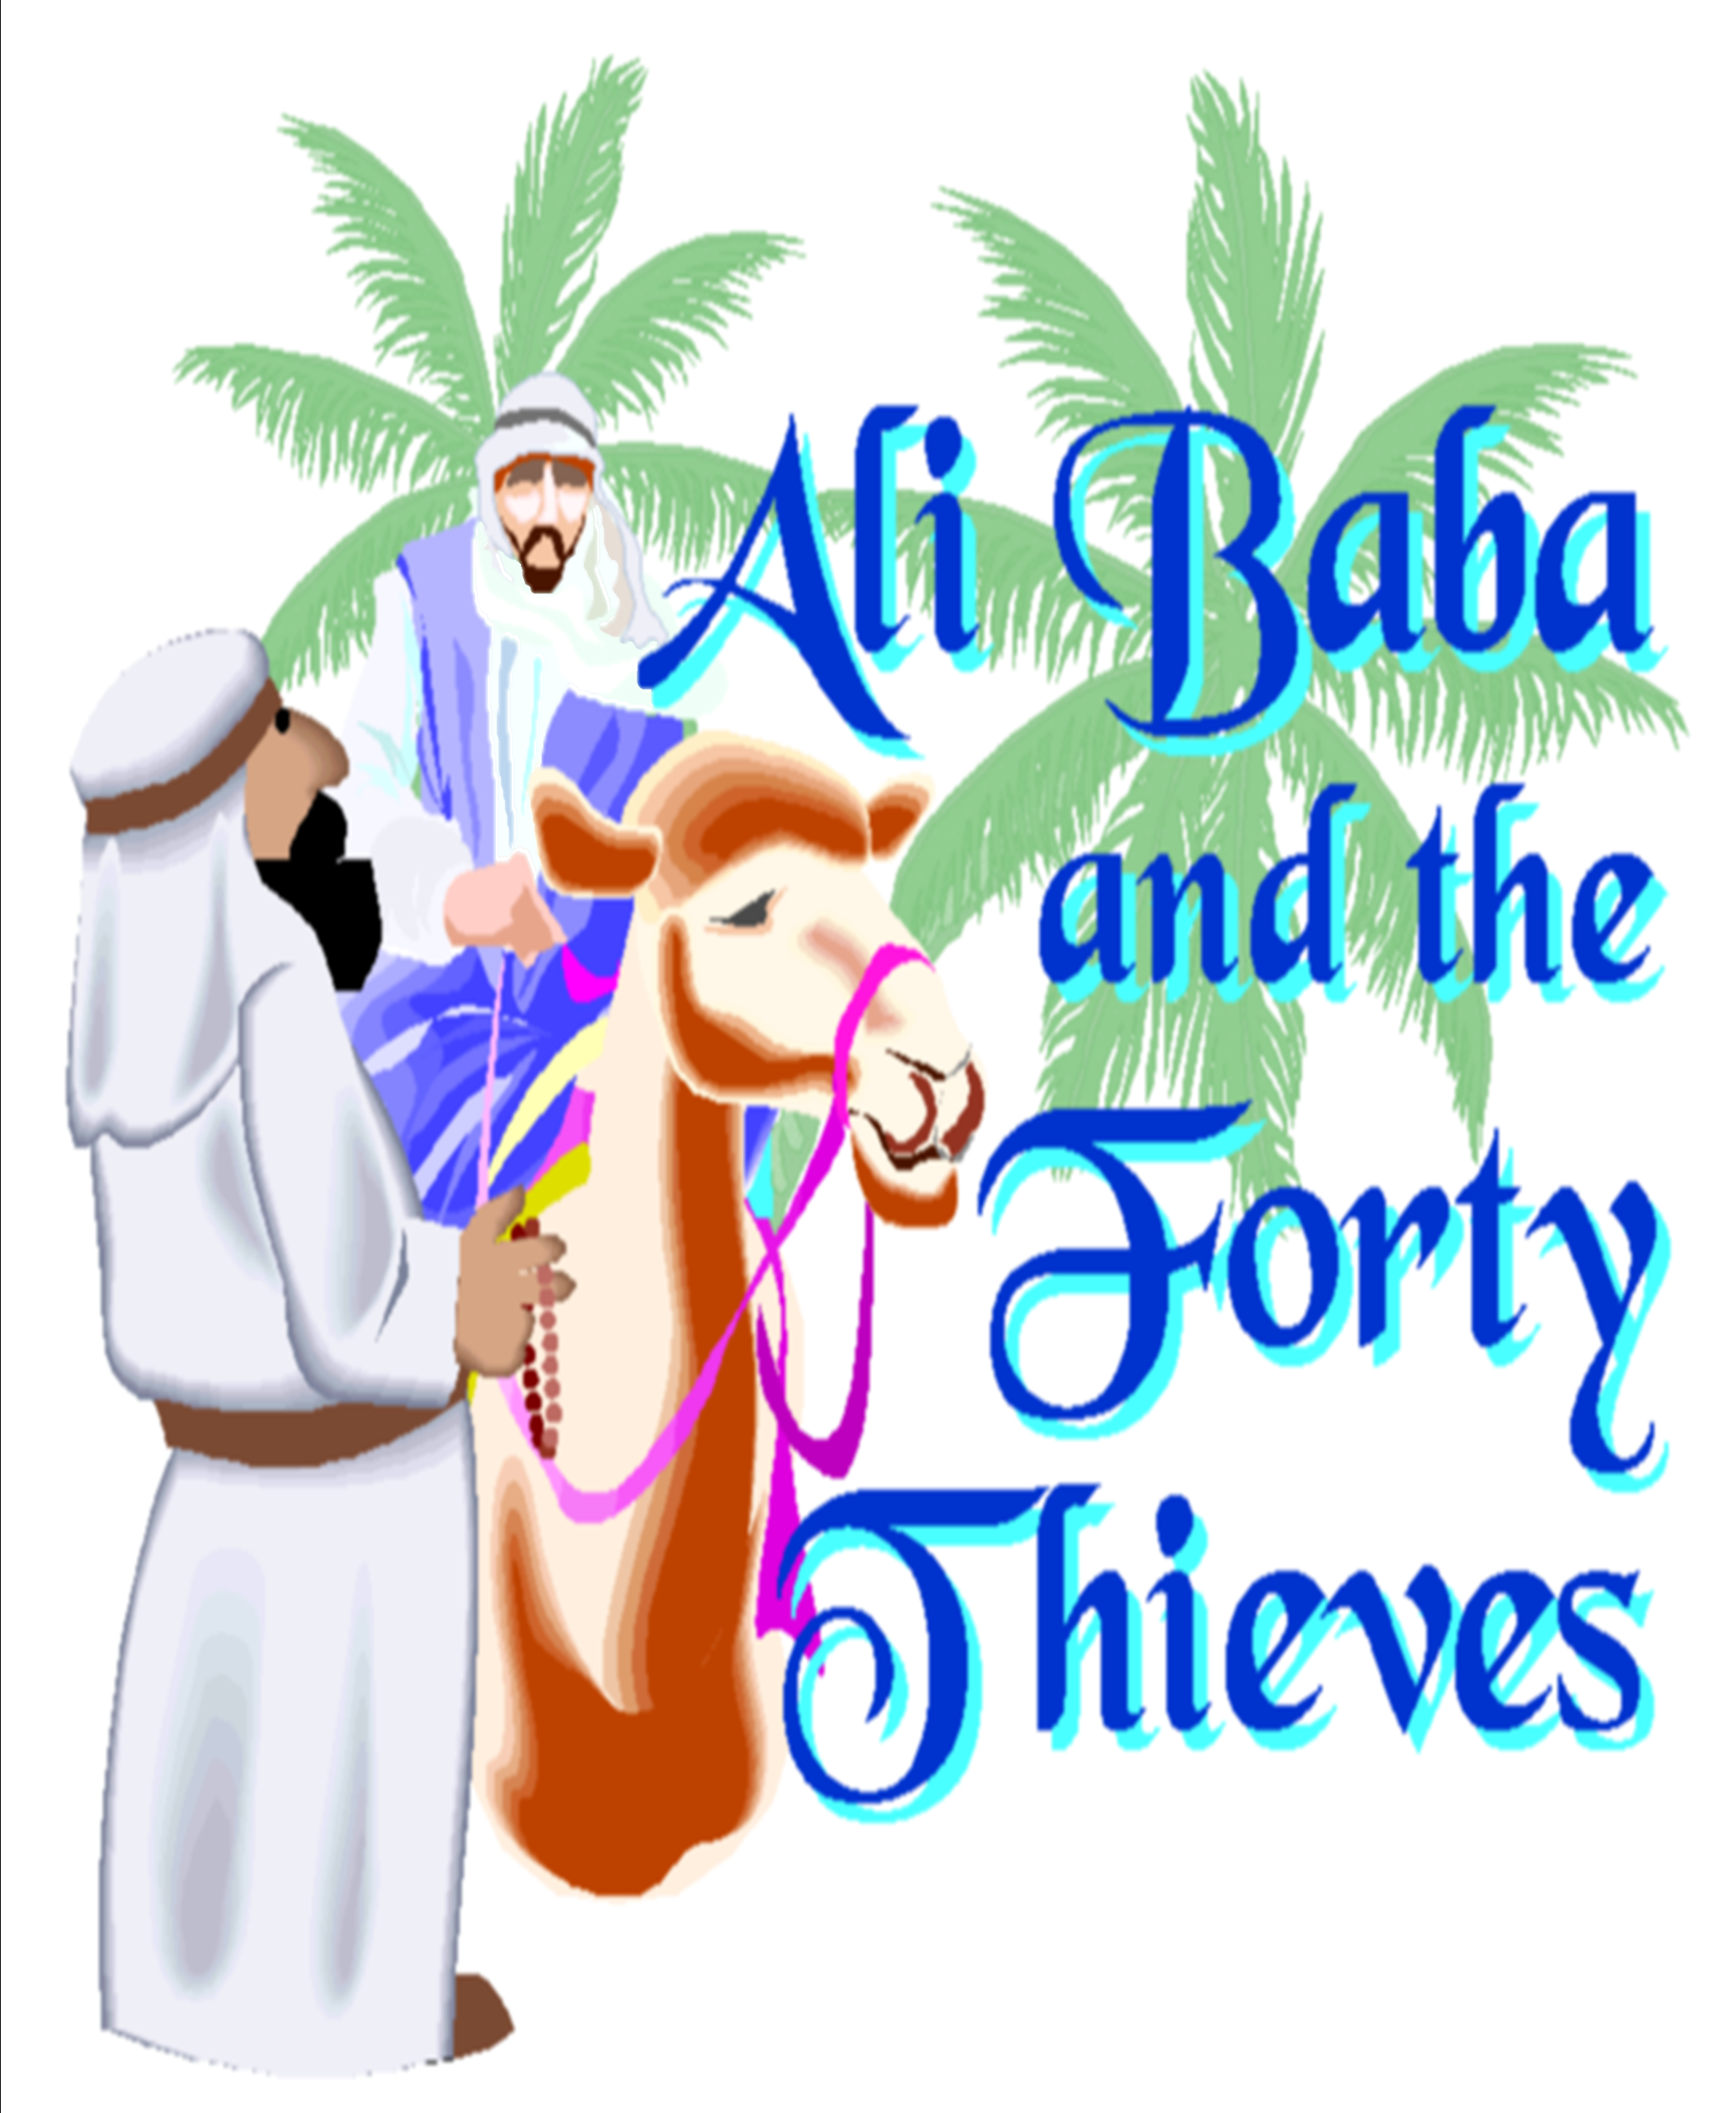 Drama clipart panto. Ali baba the forty